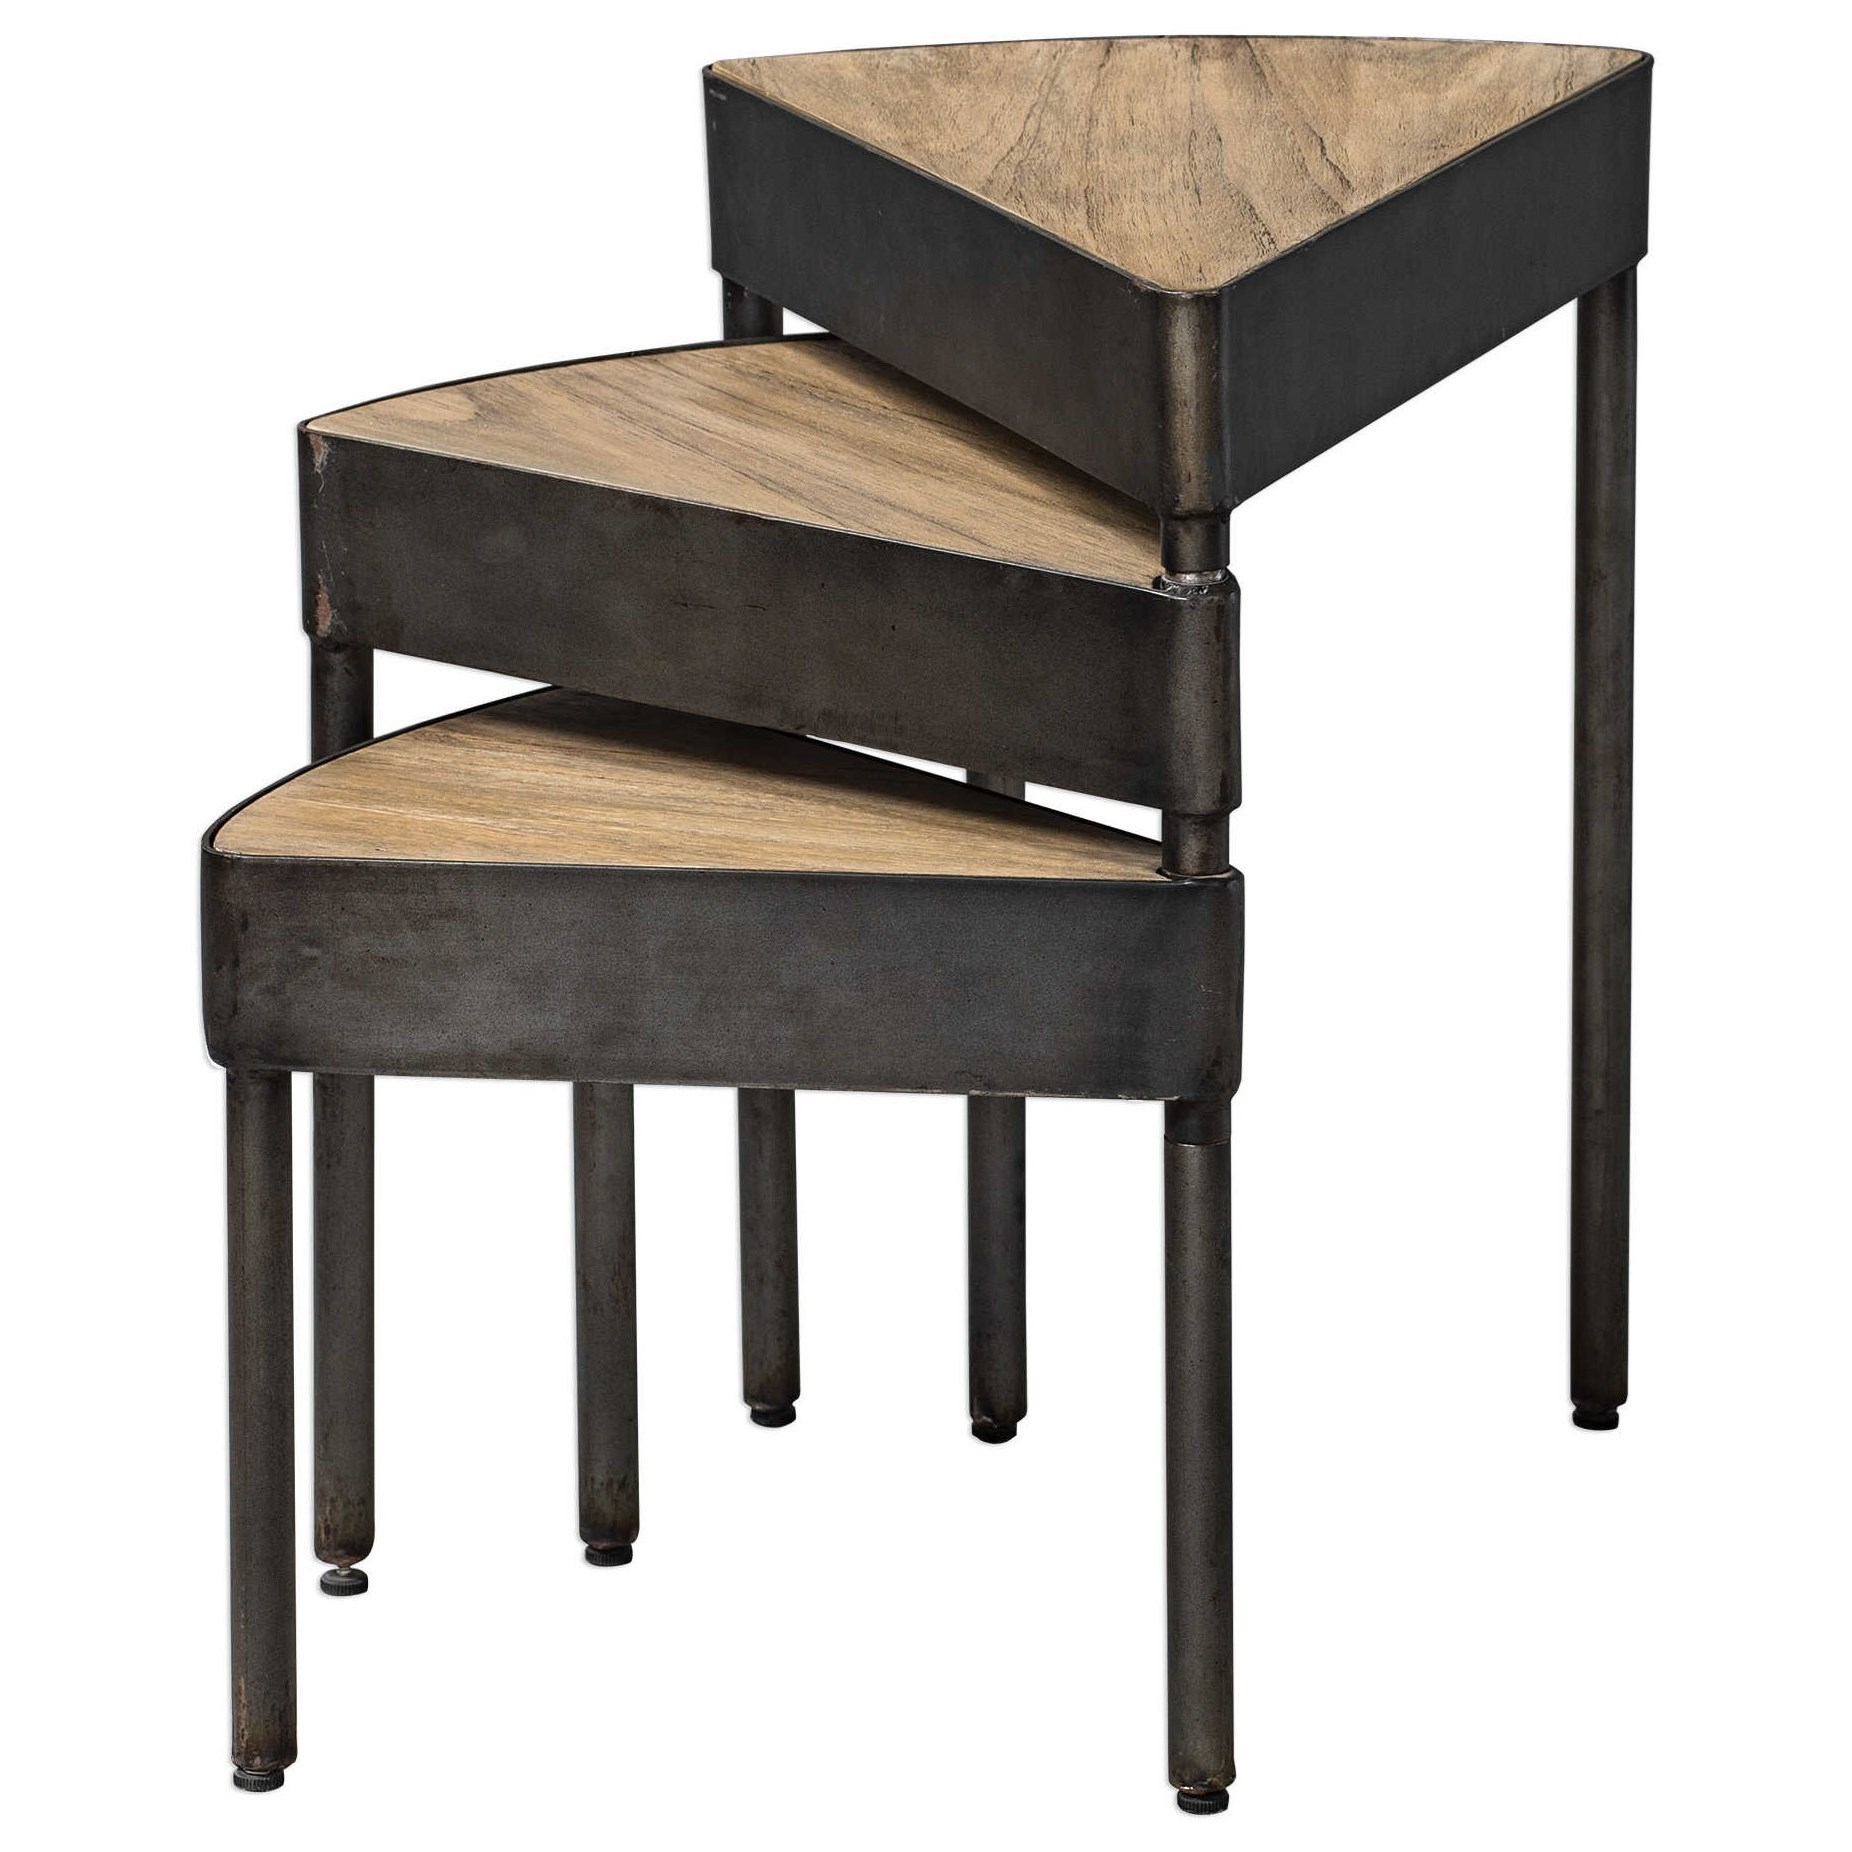 Accent Furniture - Occasional Tables Akito Nesting Table by Uttermost at Goffena Furniture & Mattress Center